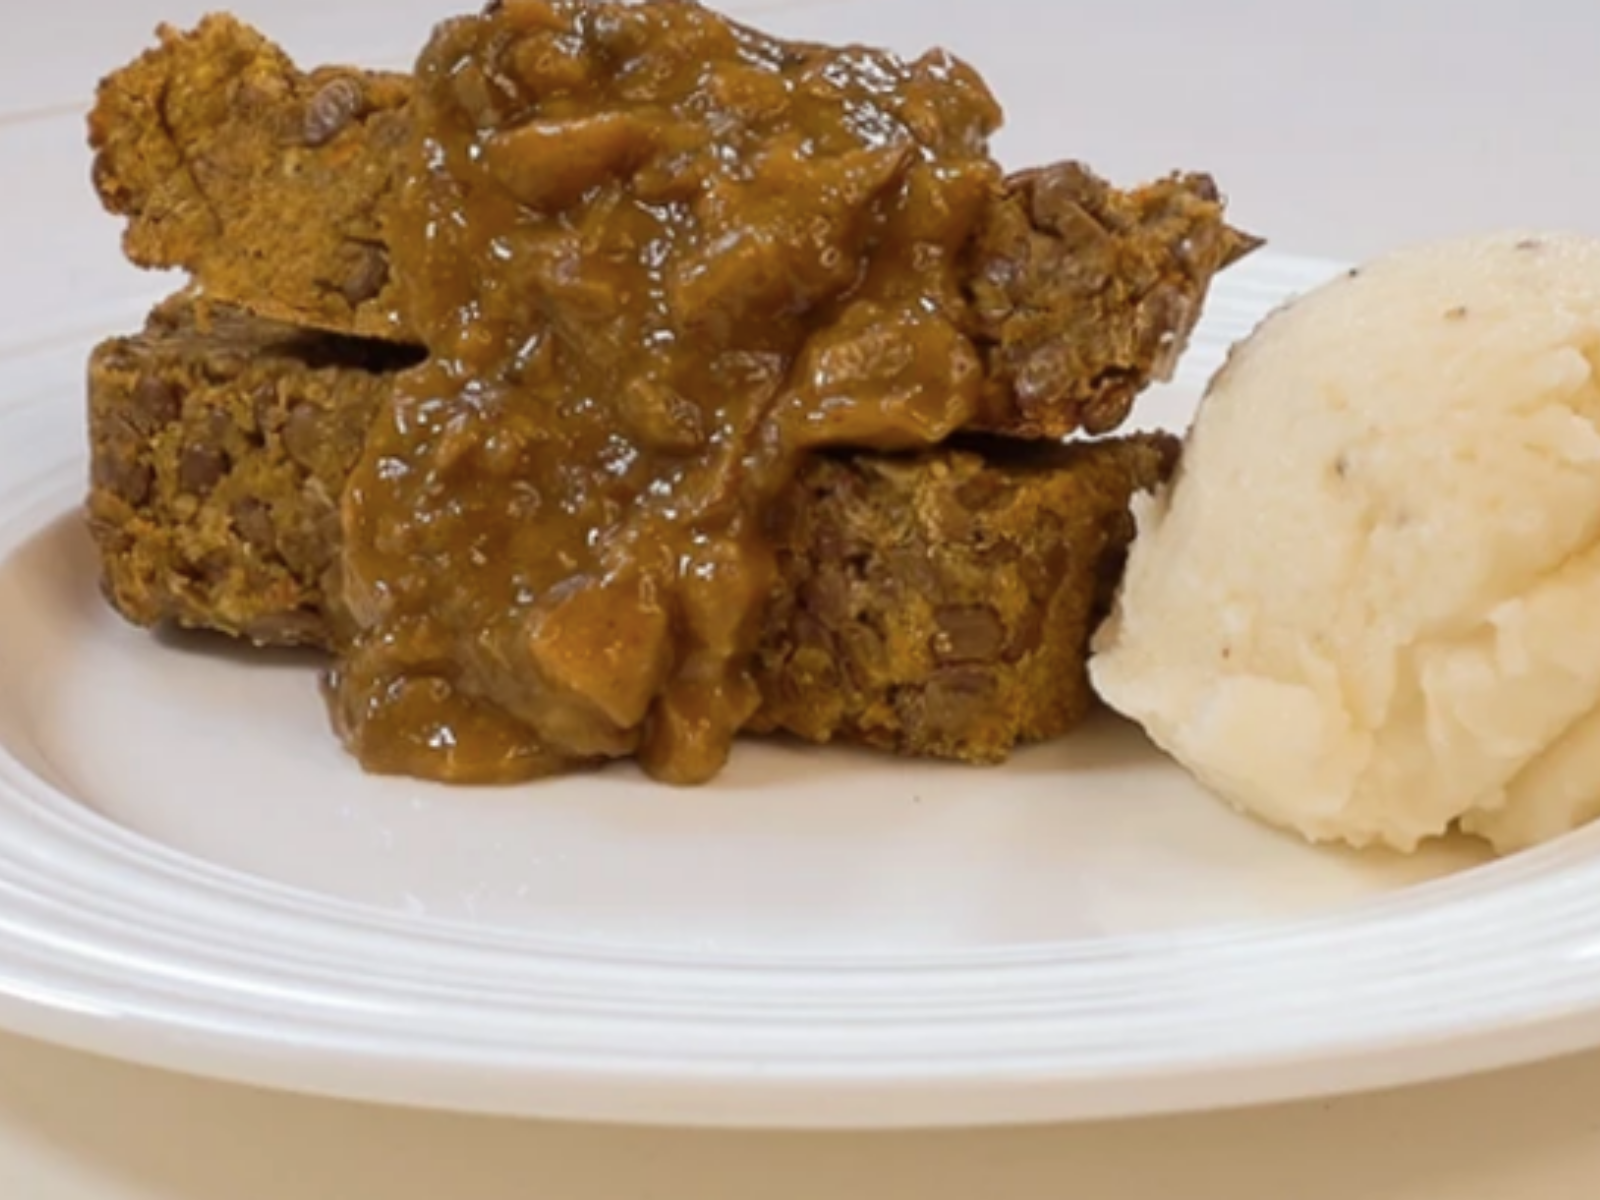 Lentil Loaf and Mushroom Gravy With Mashed Garlic Cauliflower